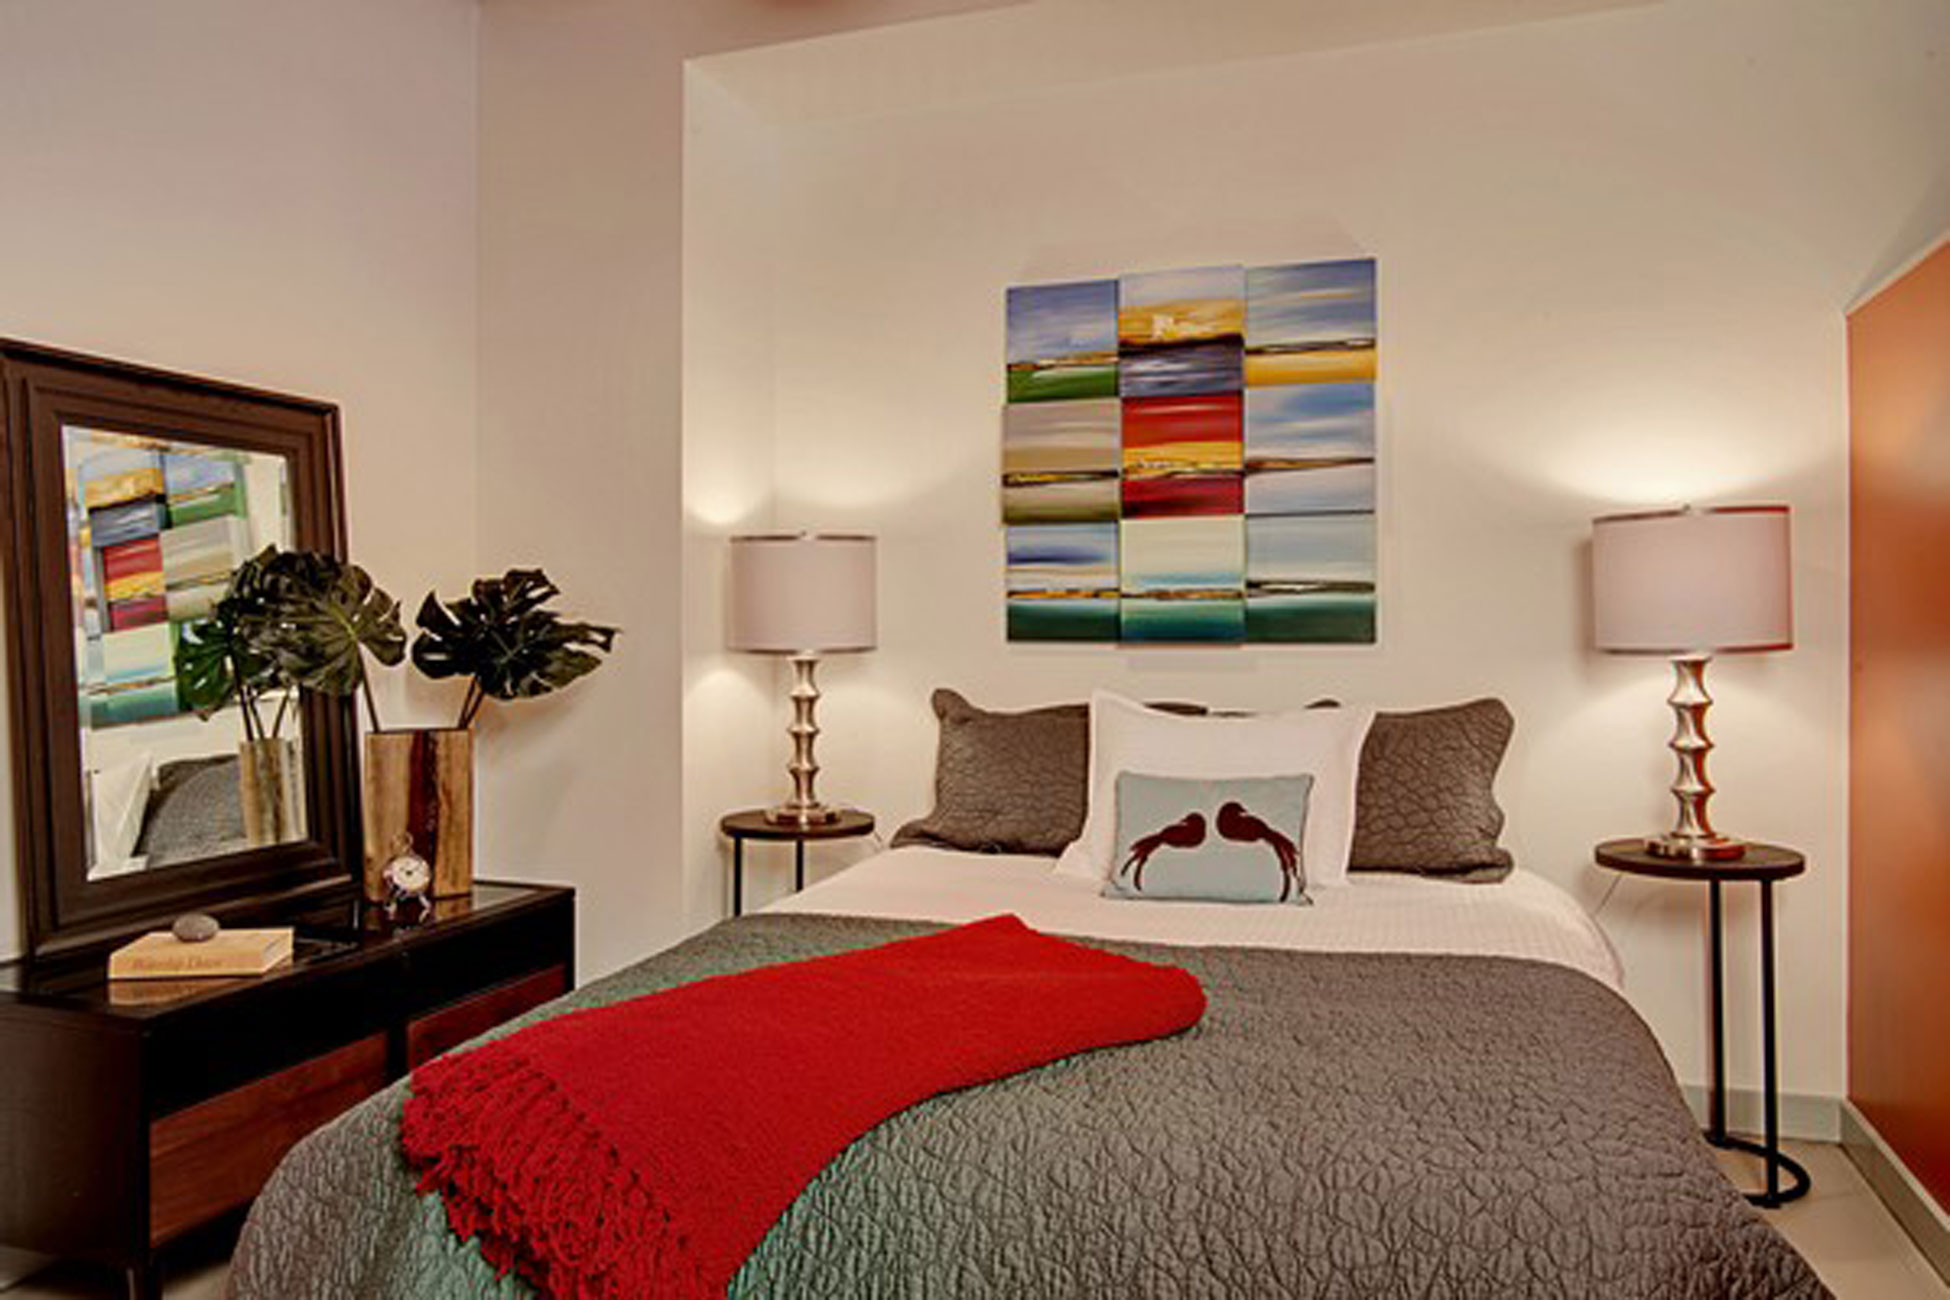 A little apartment bedroom ideas midcityeast for Bedroom bedroom ideas